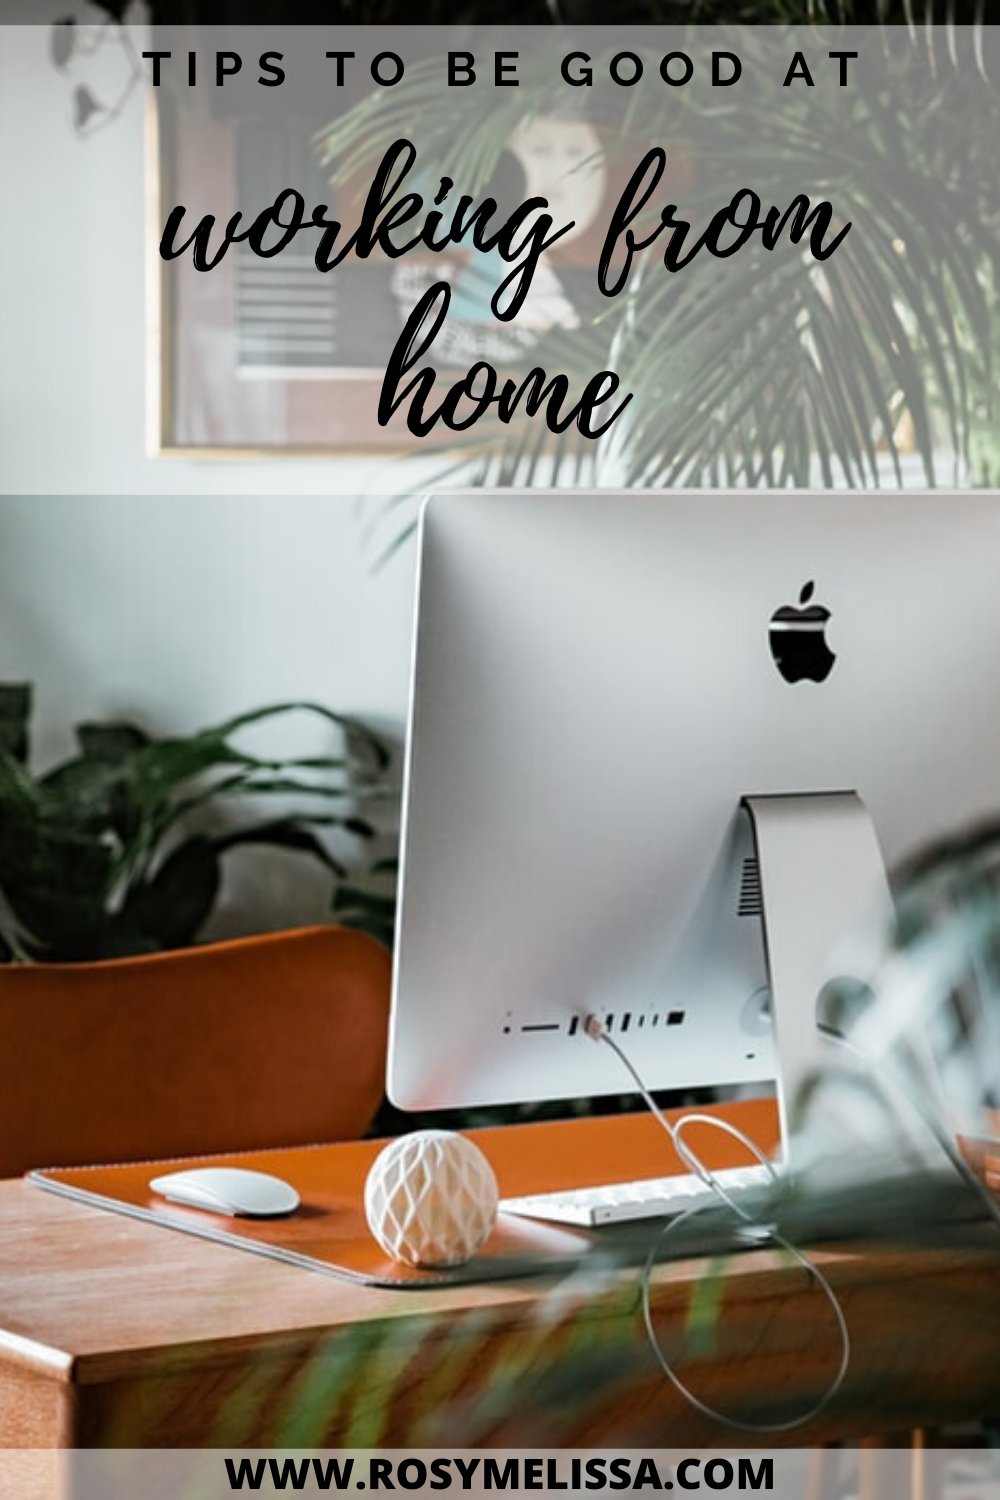 7 tips for working from home productively, efficiently working from home, work from home effectively, business, blogging, tips to work from home